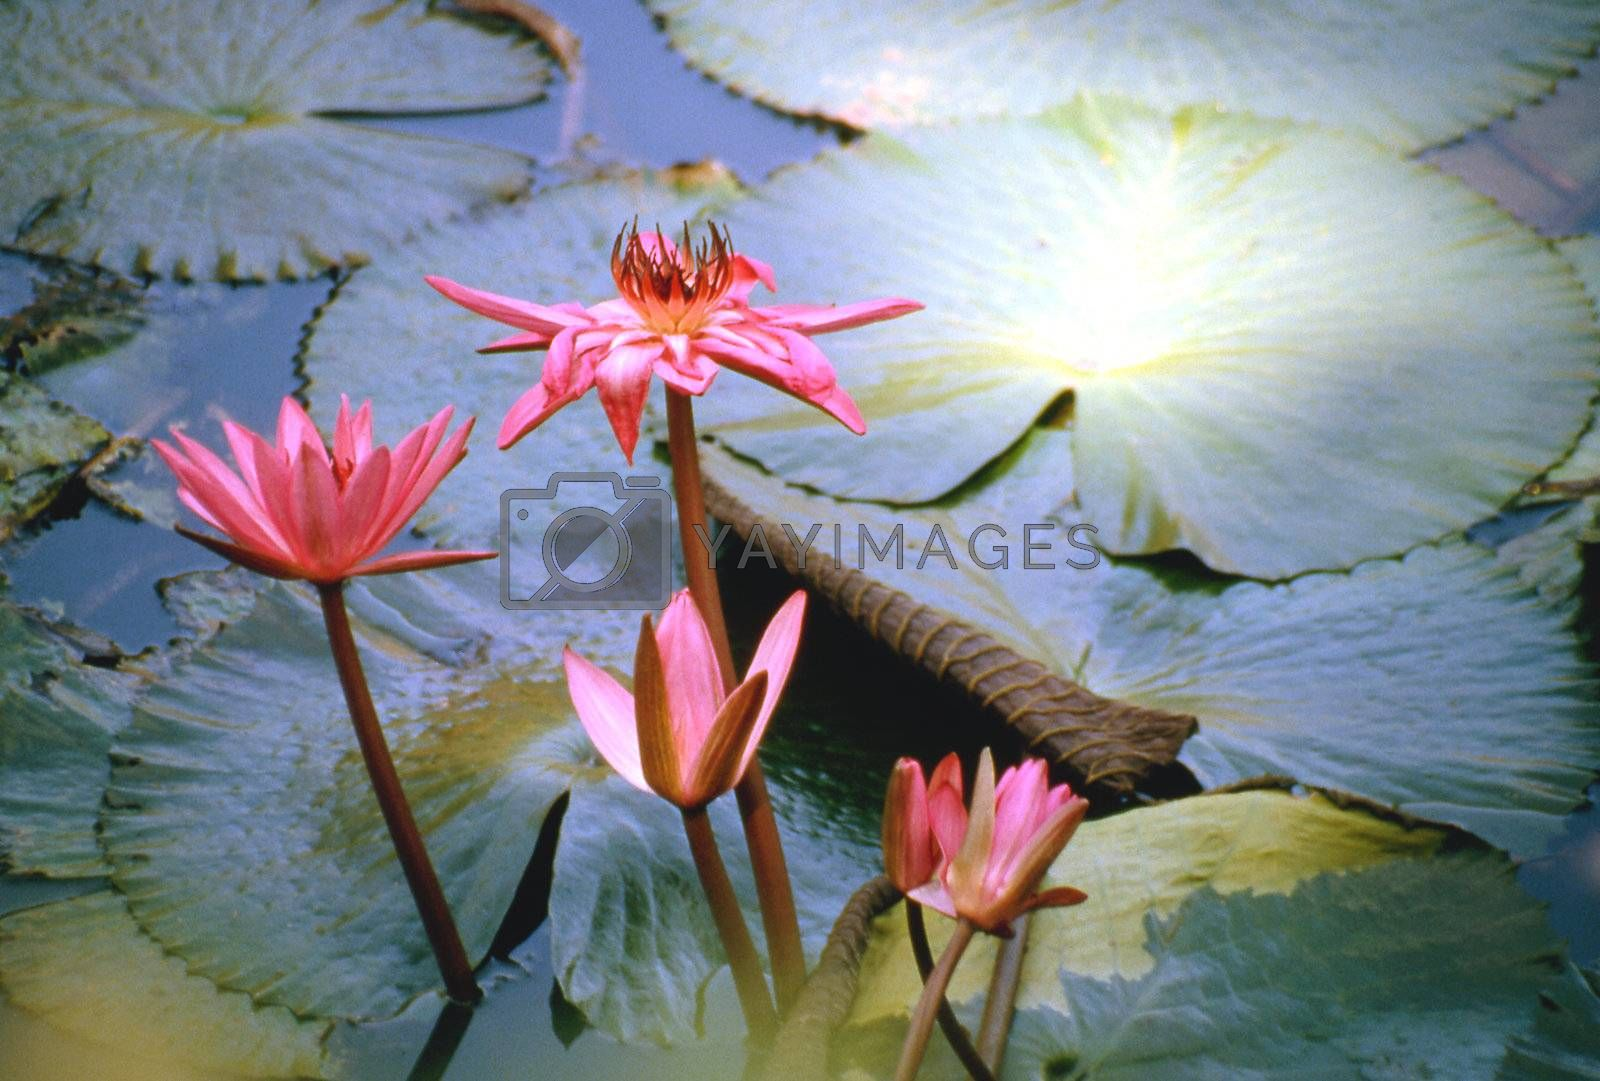 Lotus flower symbol of divine beauty seeks the sunlight.